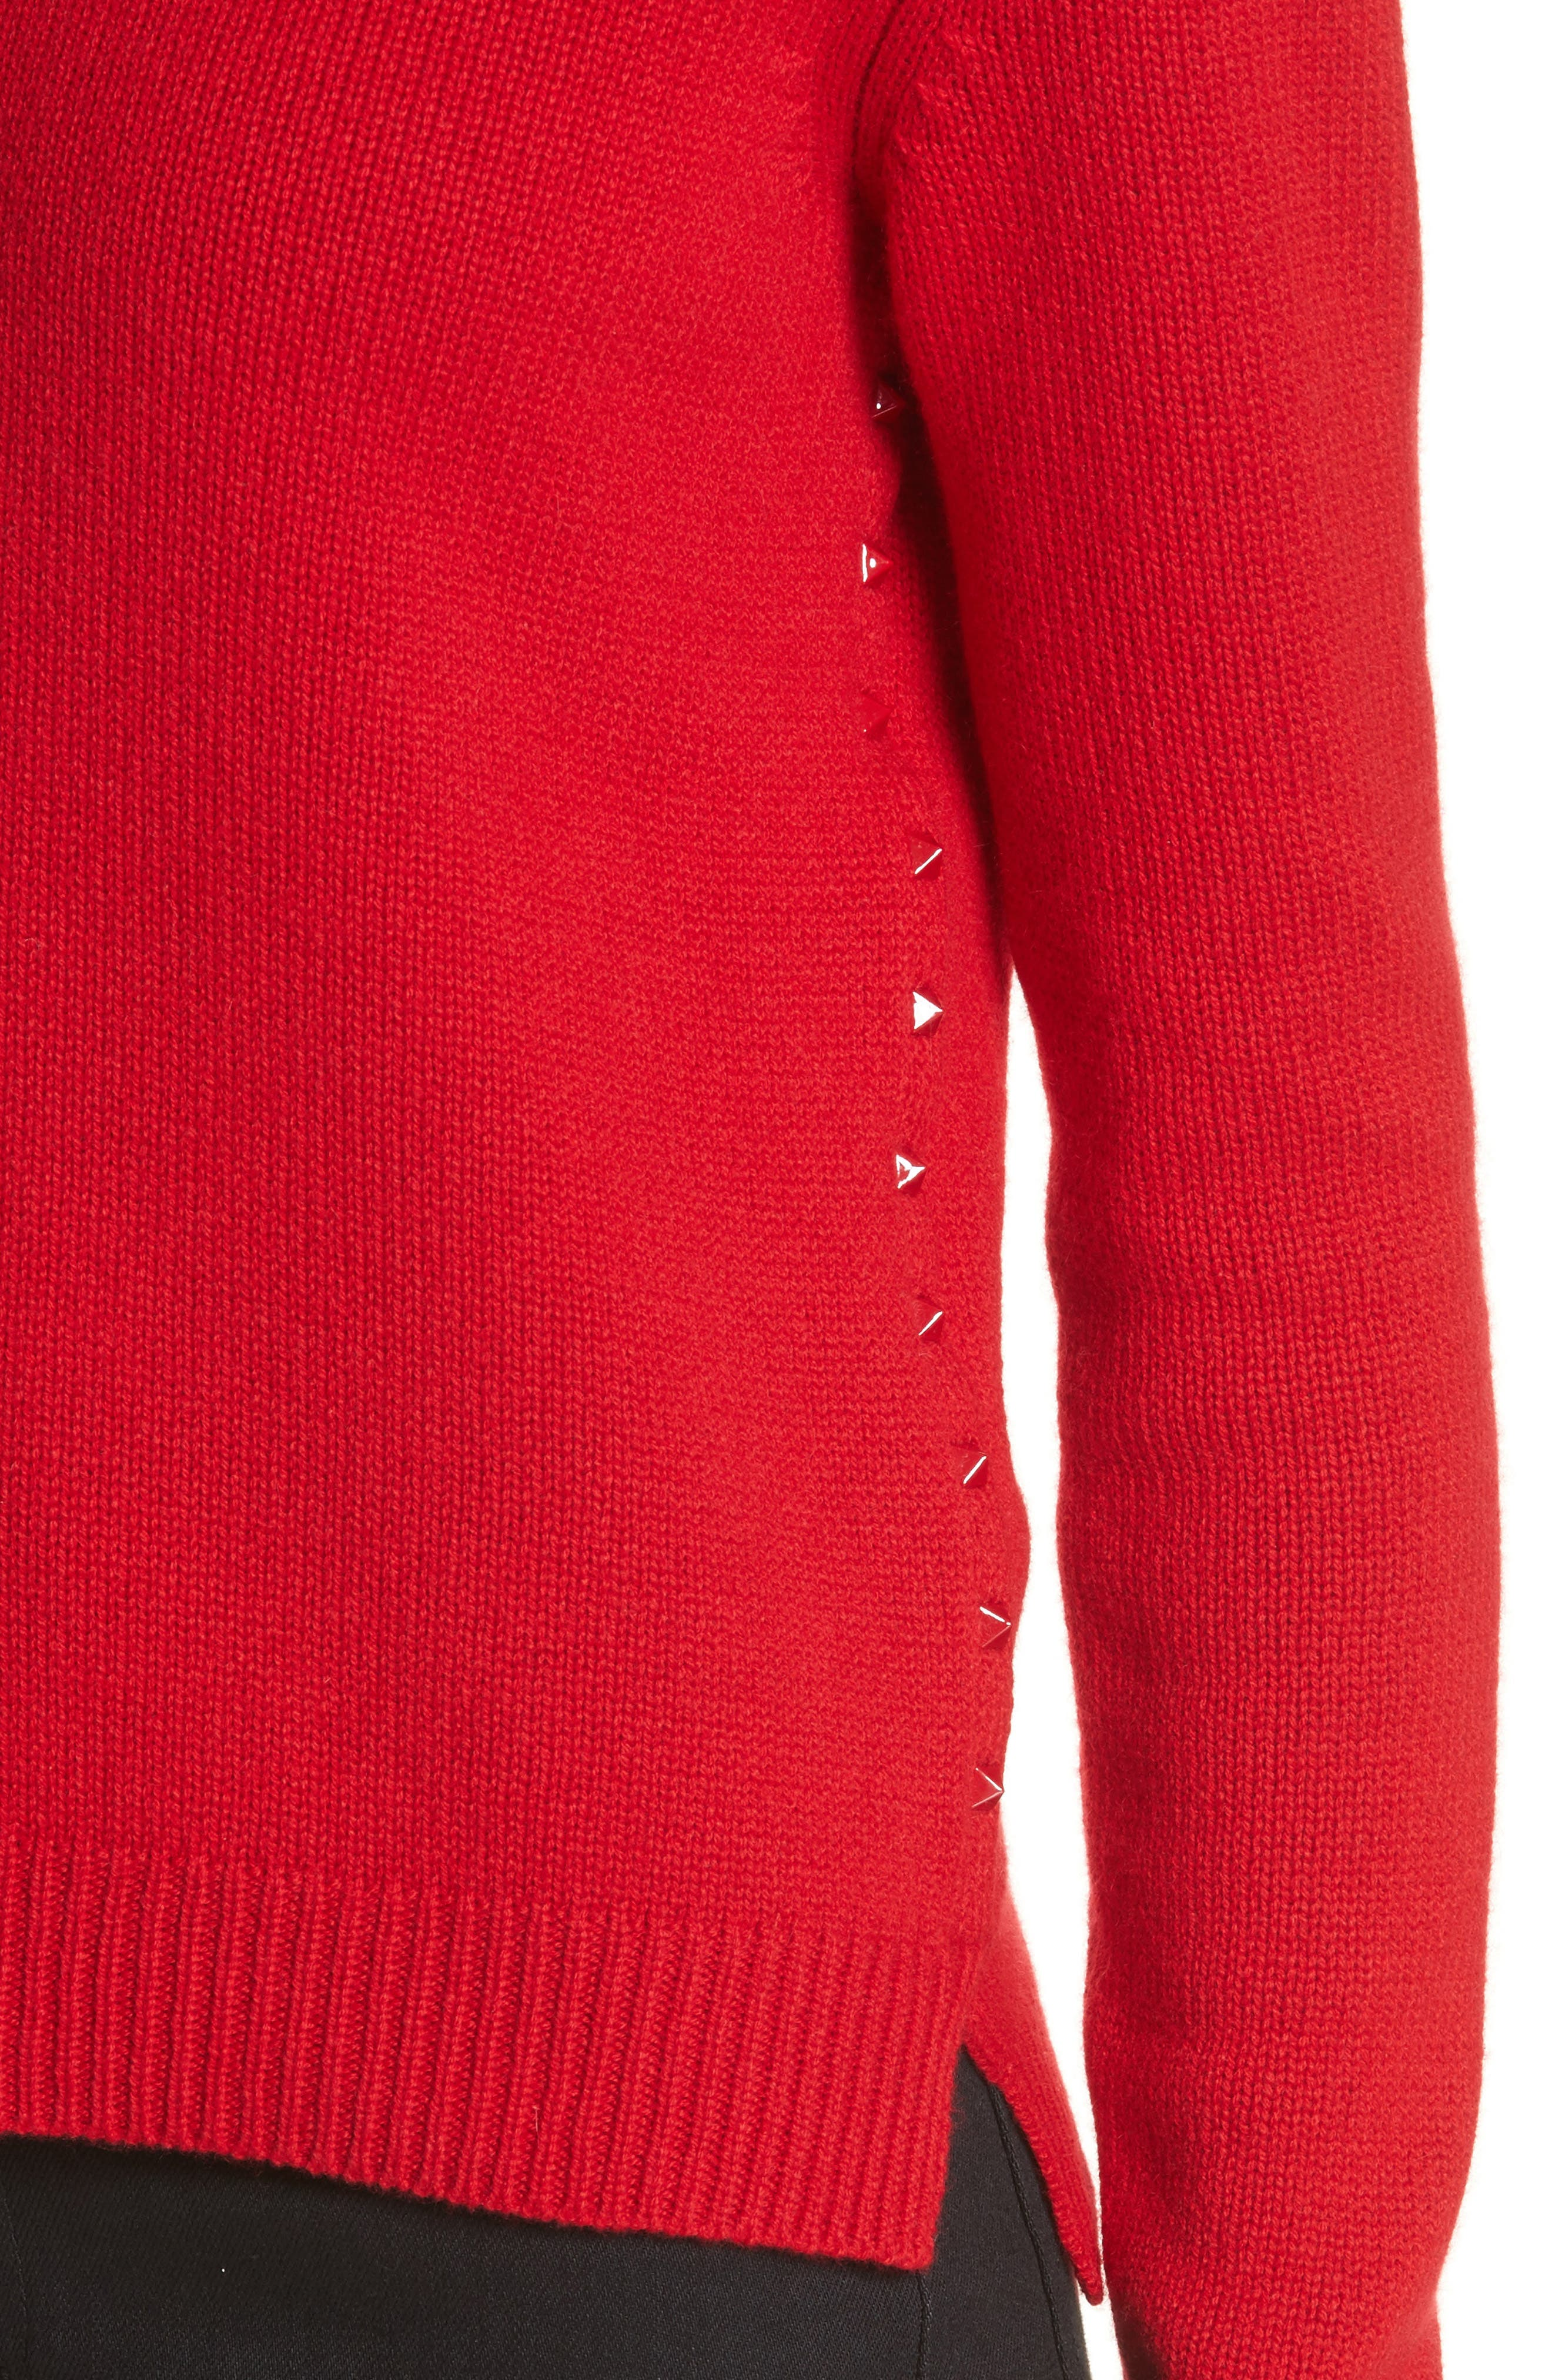 Rockstud Cashmere Sweater,                             Alternate thumbnail 4, color,                             Red